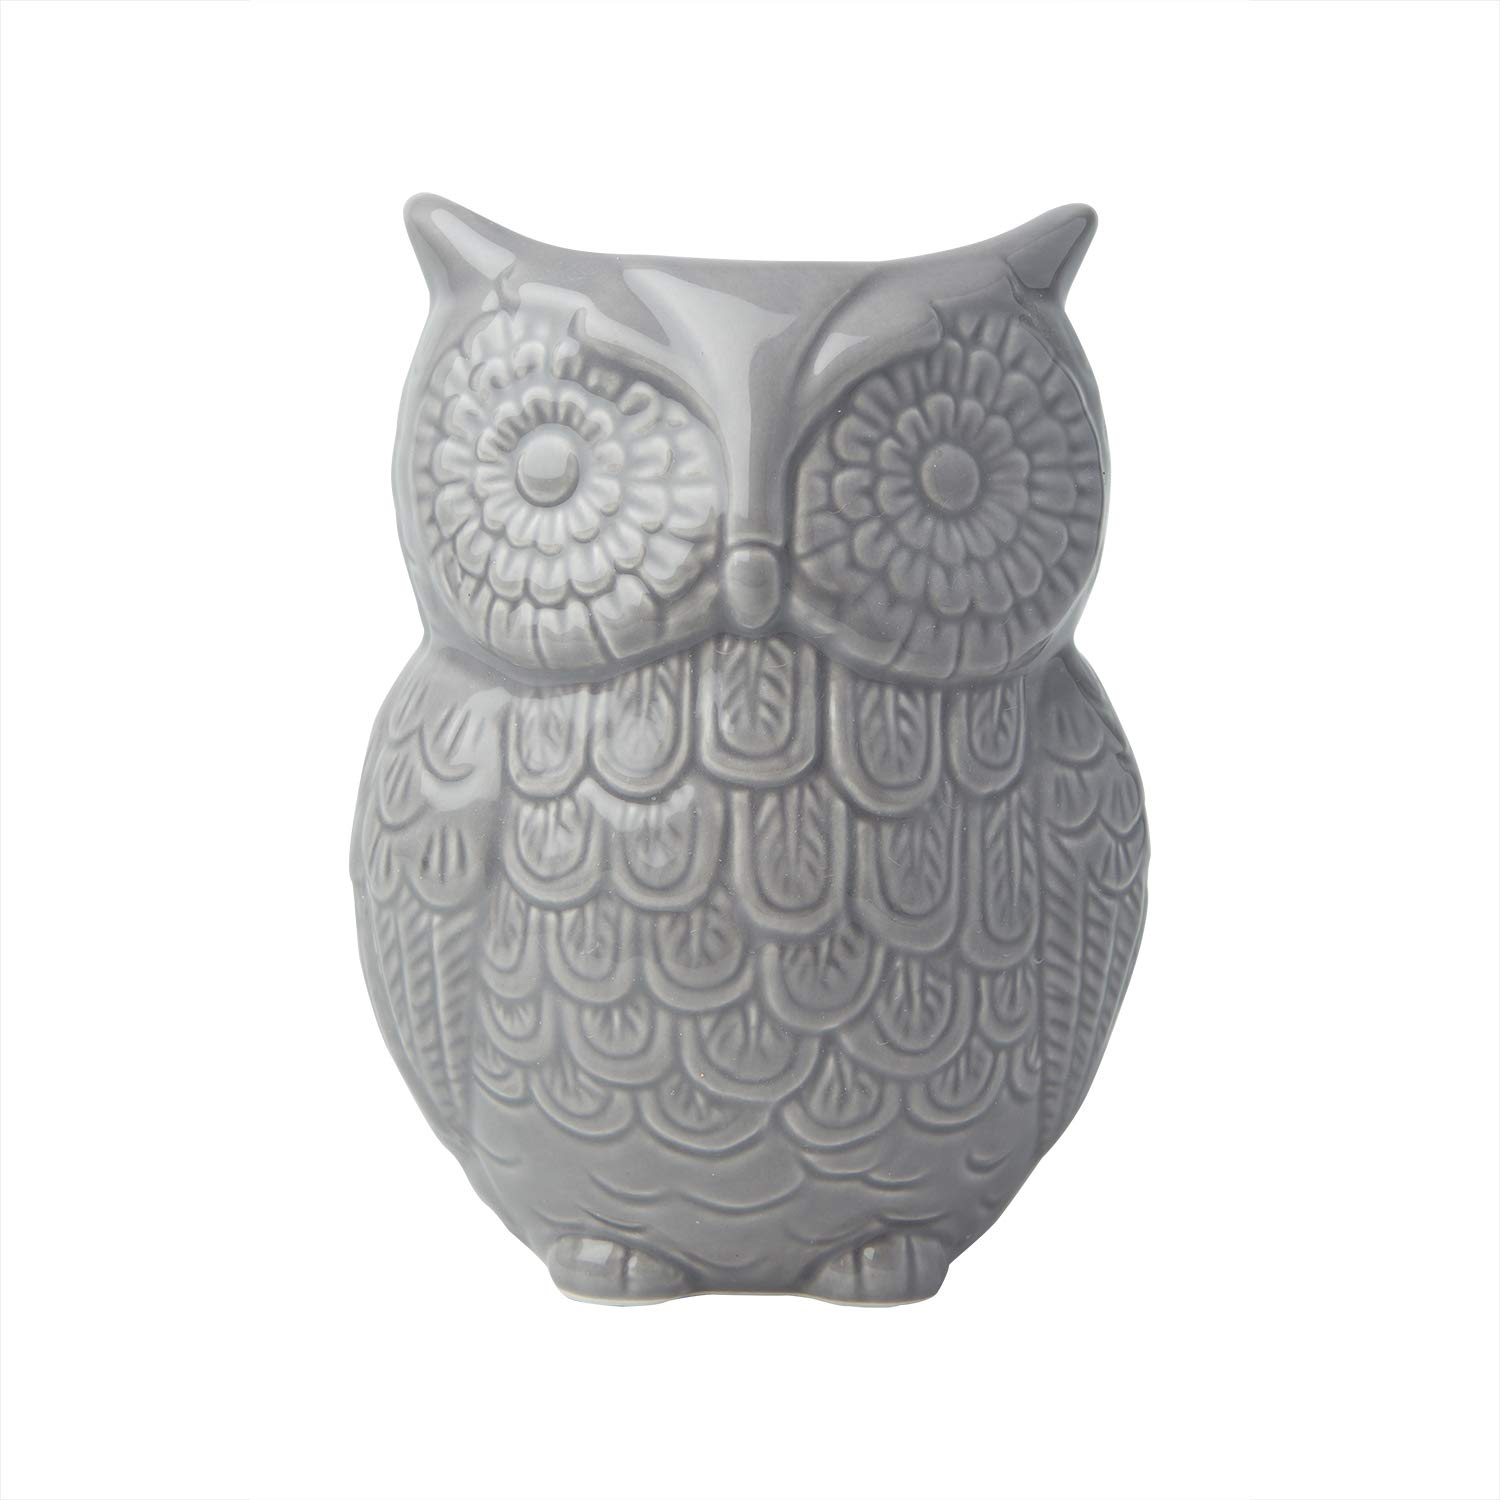 "Owl Utensil Holder by Comfify - Decorative Ceramic Cookware Crock & Organizer, in Lovely Grey Color - Utensil Caddy and Perfect Kitchen Ceramic Décor Gift - 5"" x 7"" x 4"" Size CER-0501-02-GY"